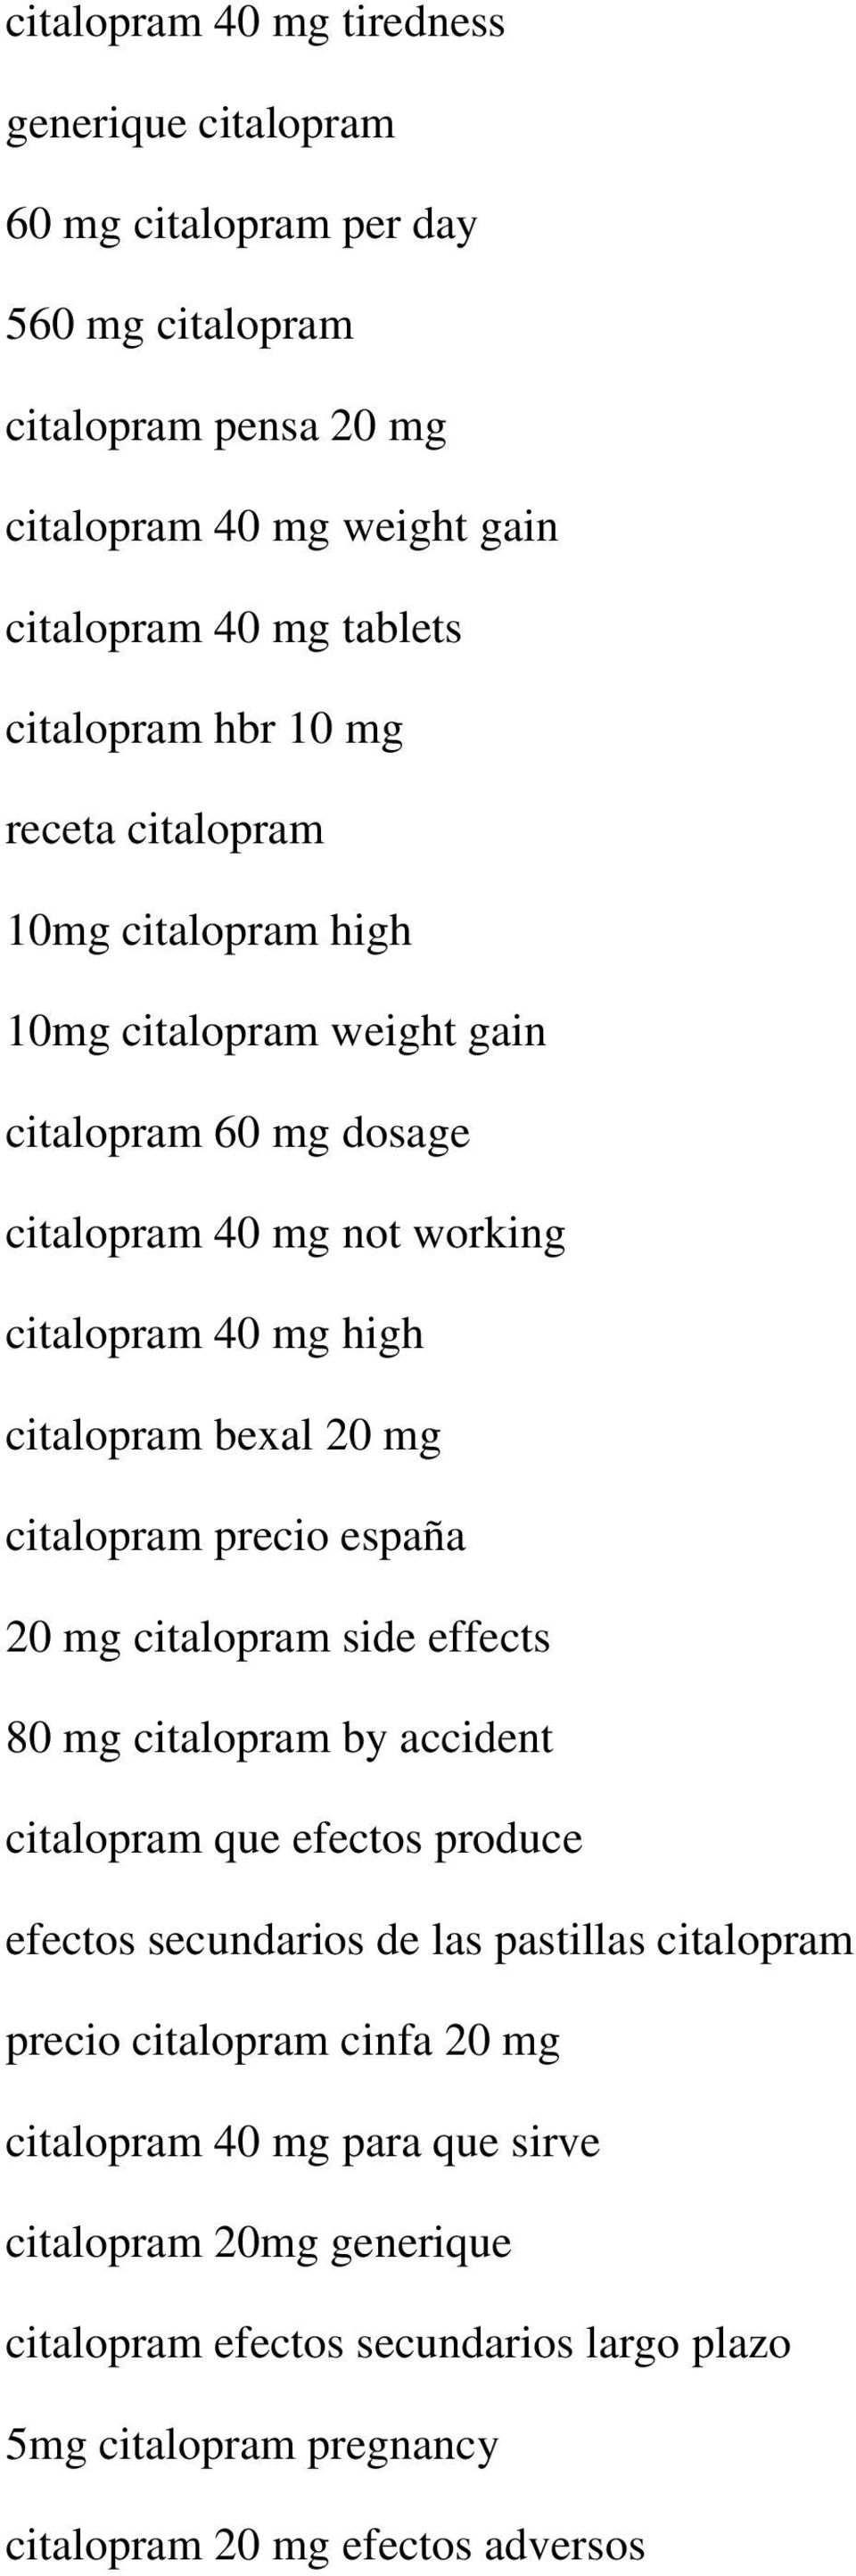 bexal 20 mg citalopram precio españa 20 mg citalopram side effects 80 mg citalopram by accident citalopram que efectos produce efectos secundarios de las pastillas citalopram